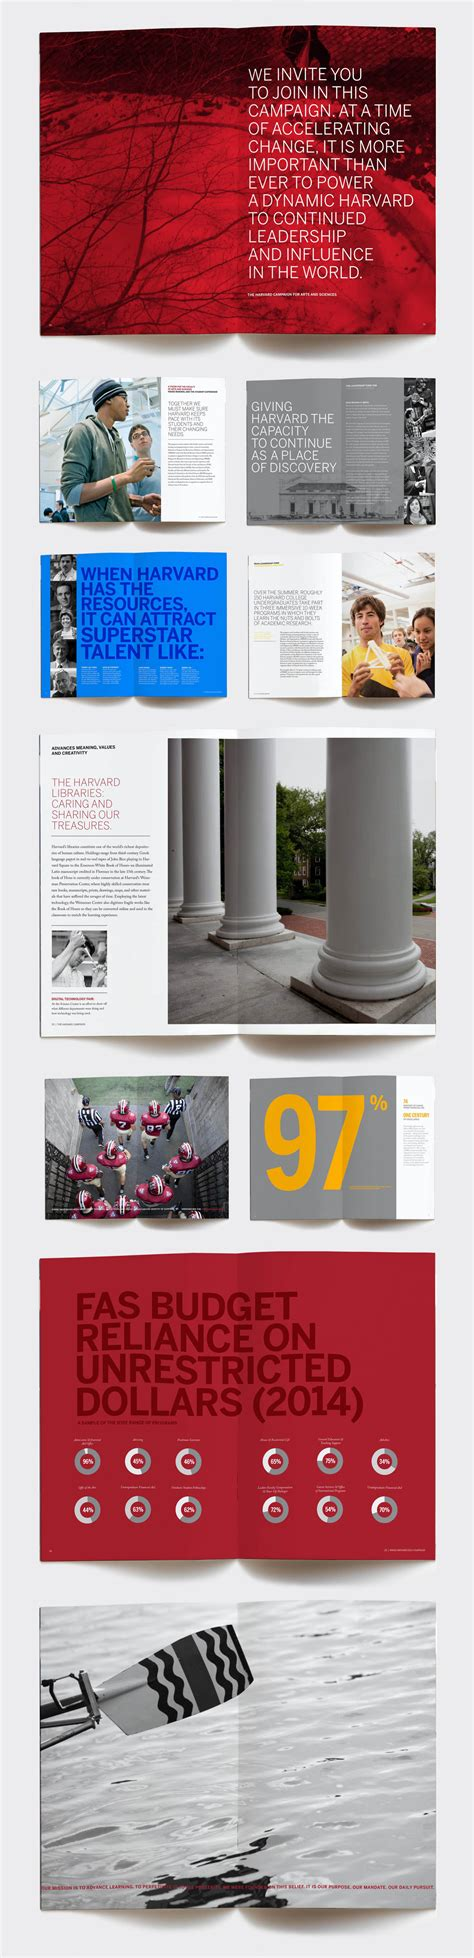 Harvard University Case Books  Hint Creative  Creative. Car Accident Lawyer Albuquerque. Walgreens Corporate Phone Number. Immigration Lawyers In Arlington Tx. Cost For Lasik Treatment How Do I Sell Stock. Riversource Flexible Annuity. When Can You Get A Credit Card. Accounting Project Management. List Of Medicare Supplement Plans